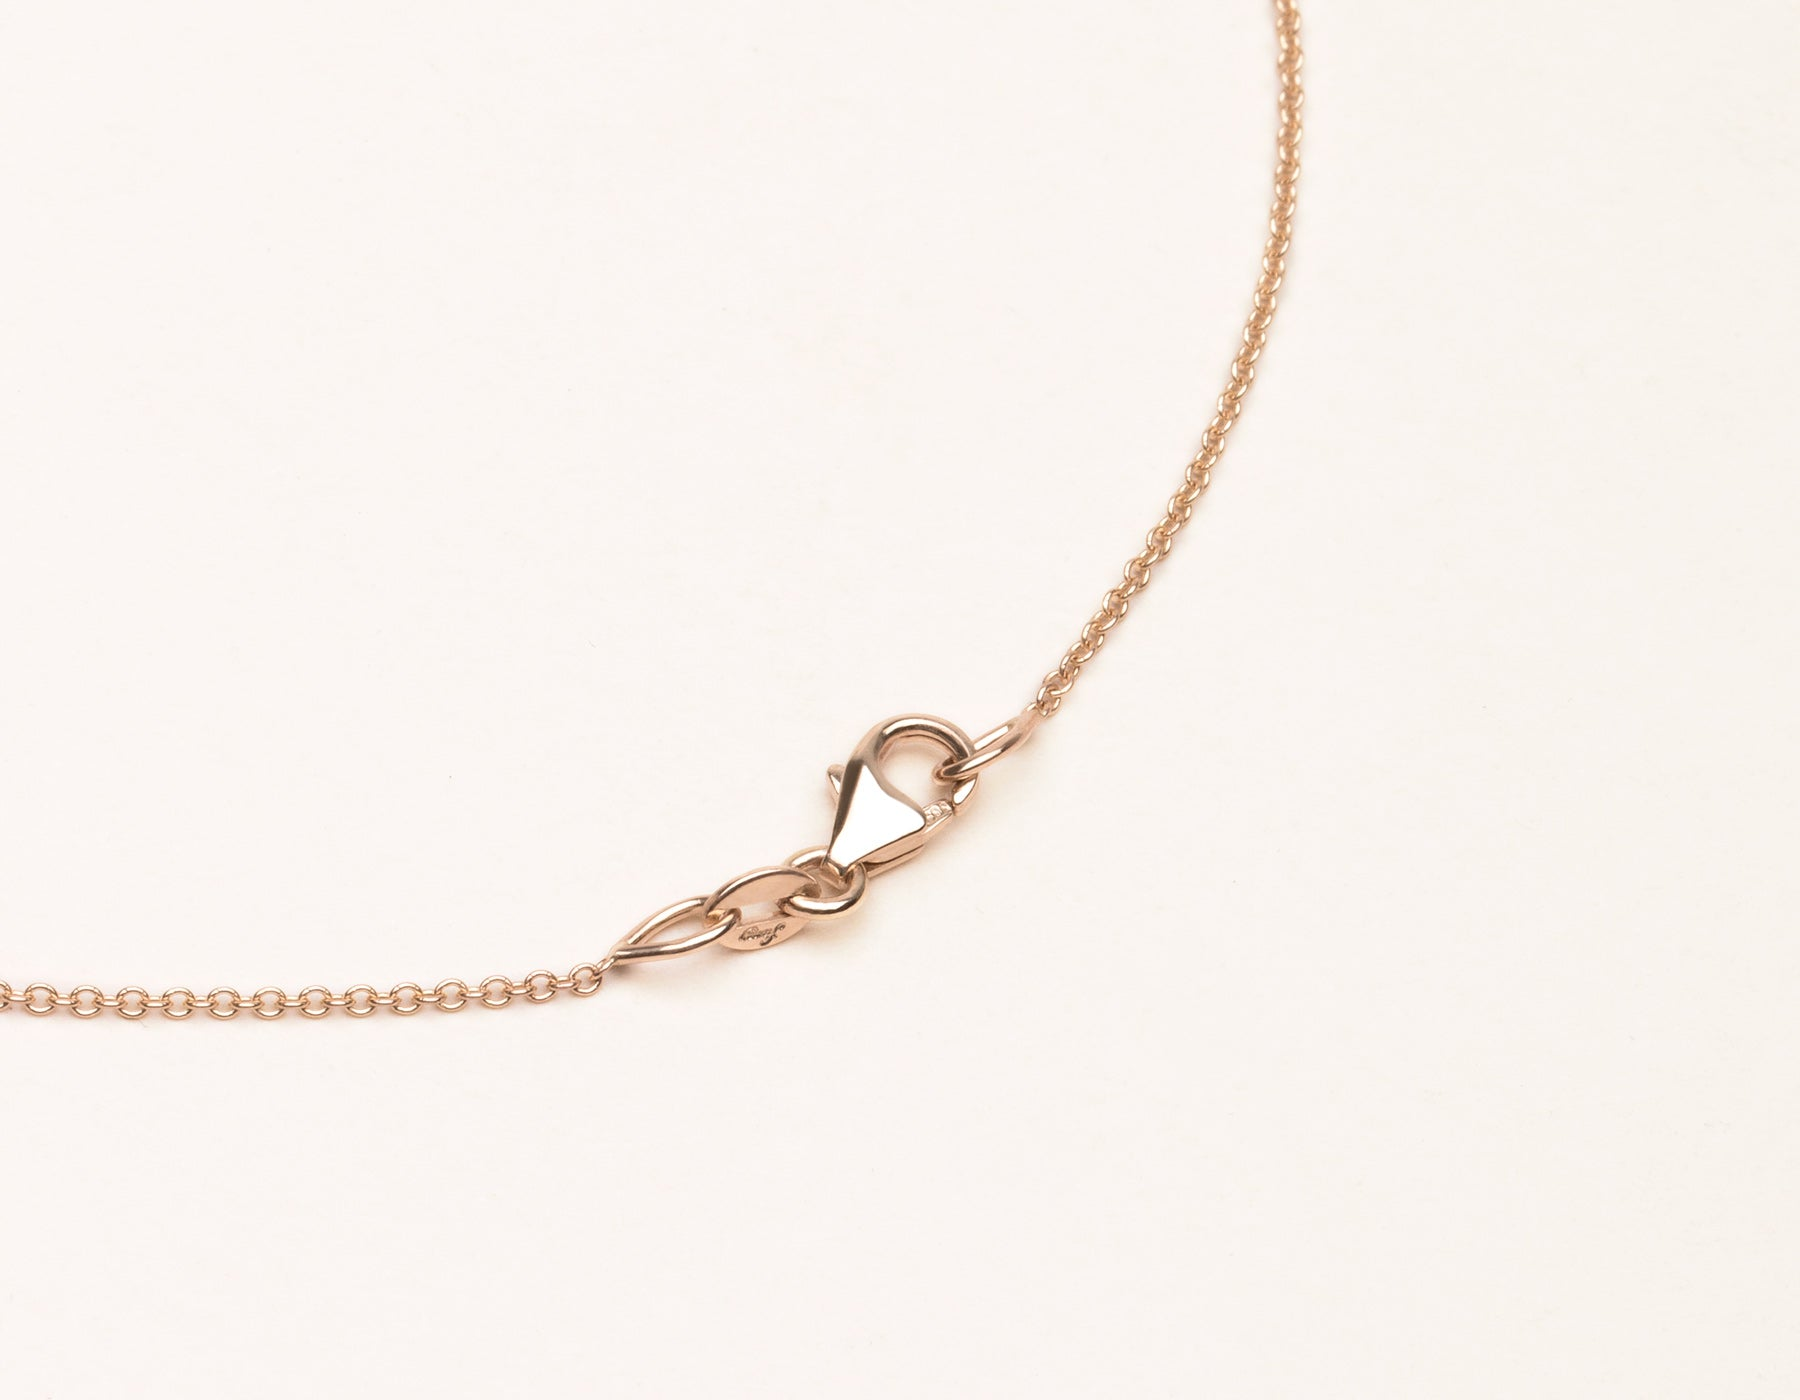 Vrai & Oro 18K Solid Gold Necklace Lobster Clasp, 18K Rose Gold